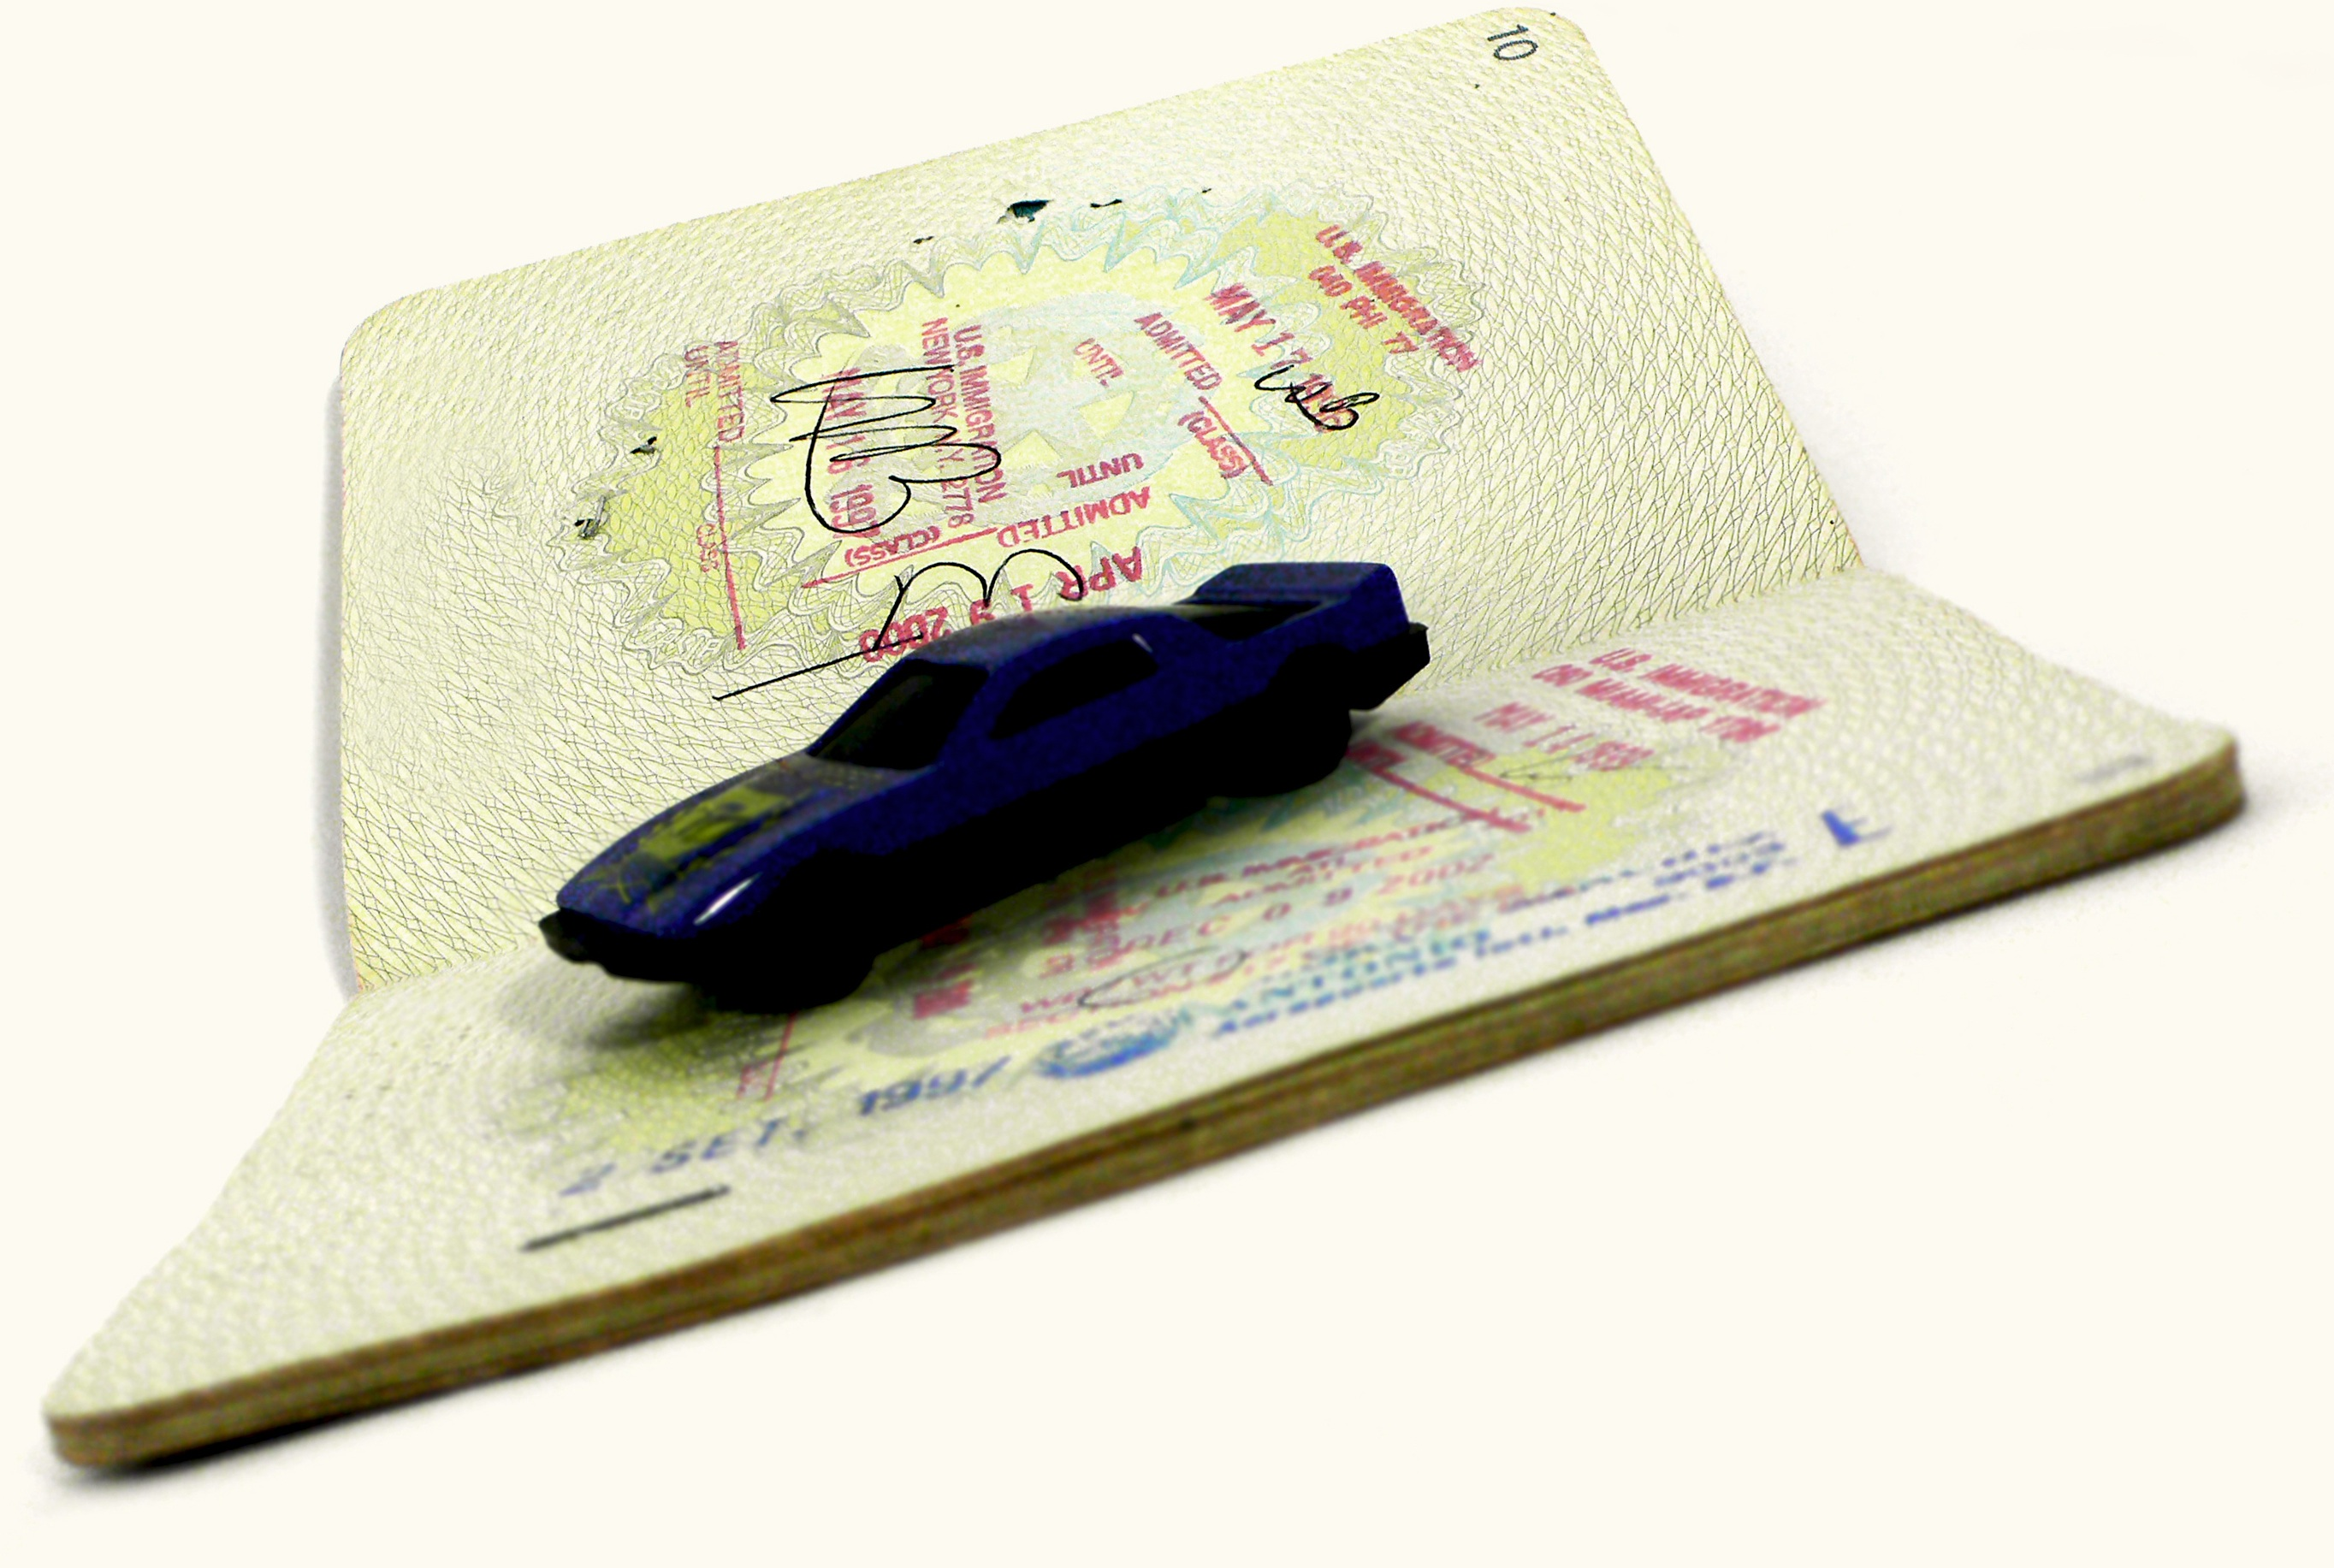 What Are The Procedures For Getting A Passport?